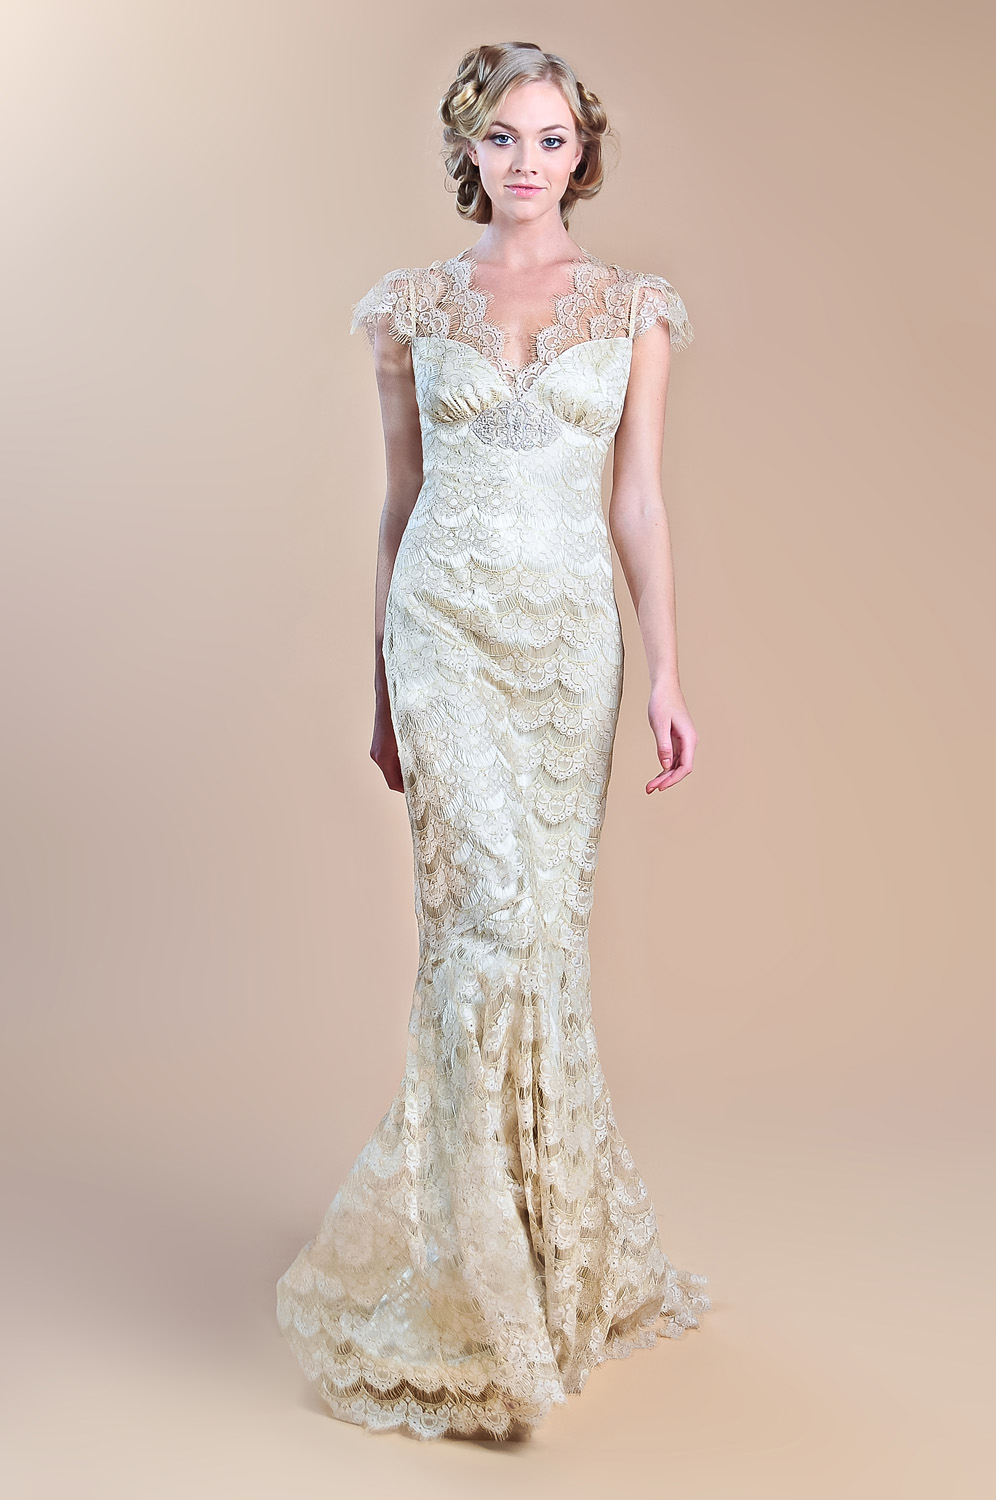 Eloquence by Claire Pettibone